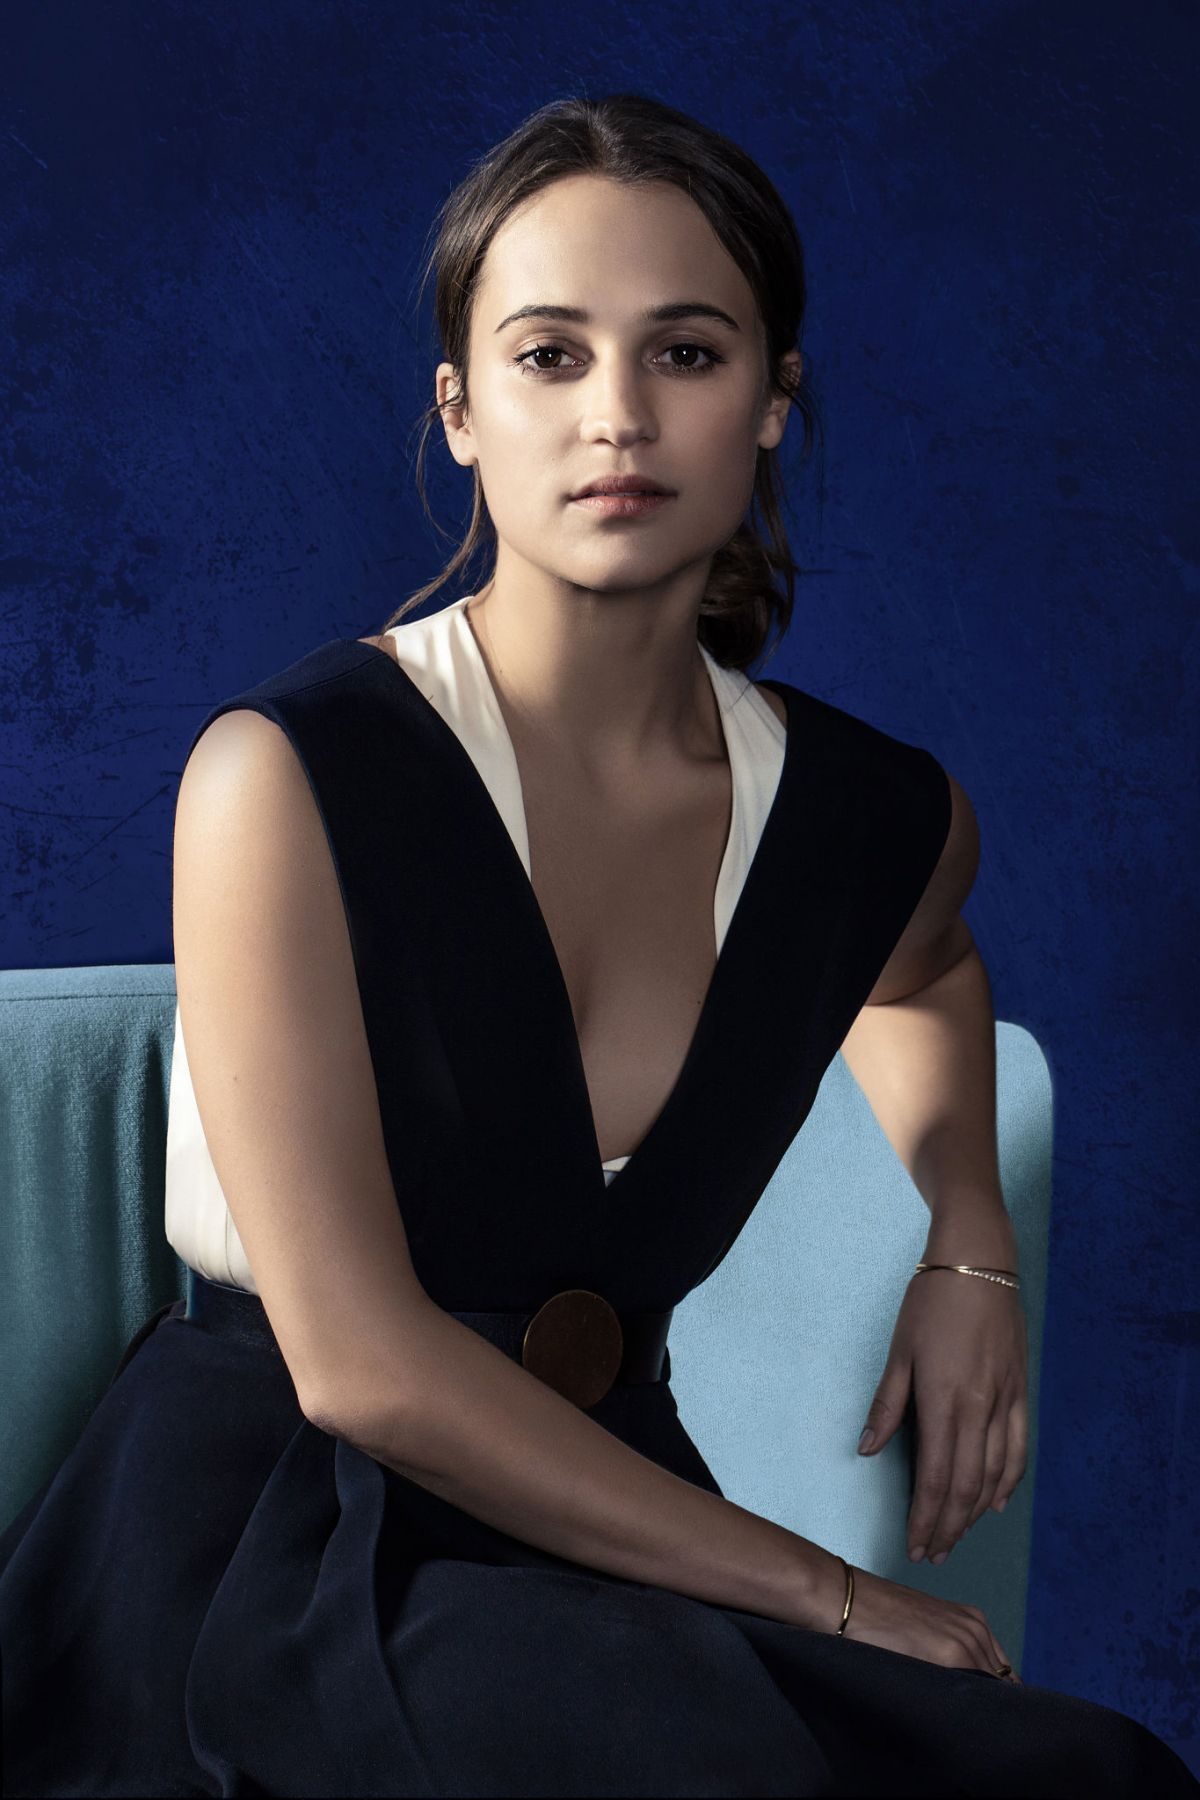 alicia vikander galleryalicia vikander instagram, alicia vikander tomb raider, alicia vikander and michael fassbender, alicia vikander gif, alicia vikander tumblr, alicia vikander oscar, alicia vikander style, alicia vikander 2017, alicia vikander dancing, alicia vikander dance, alicia vikander facebook, alicia vikander imdb, alicia vikander gallery, alicia vikander 2016, alicia vikander fassbender, alicia vikander films, alicia vikander wiki, alicia vikander кинопоиск, alicia vikander filmography, alicia vikander wikipedia